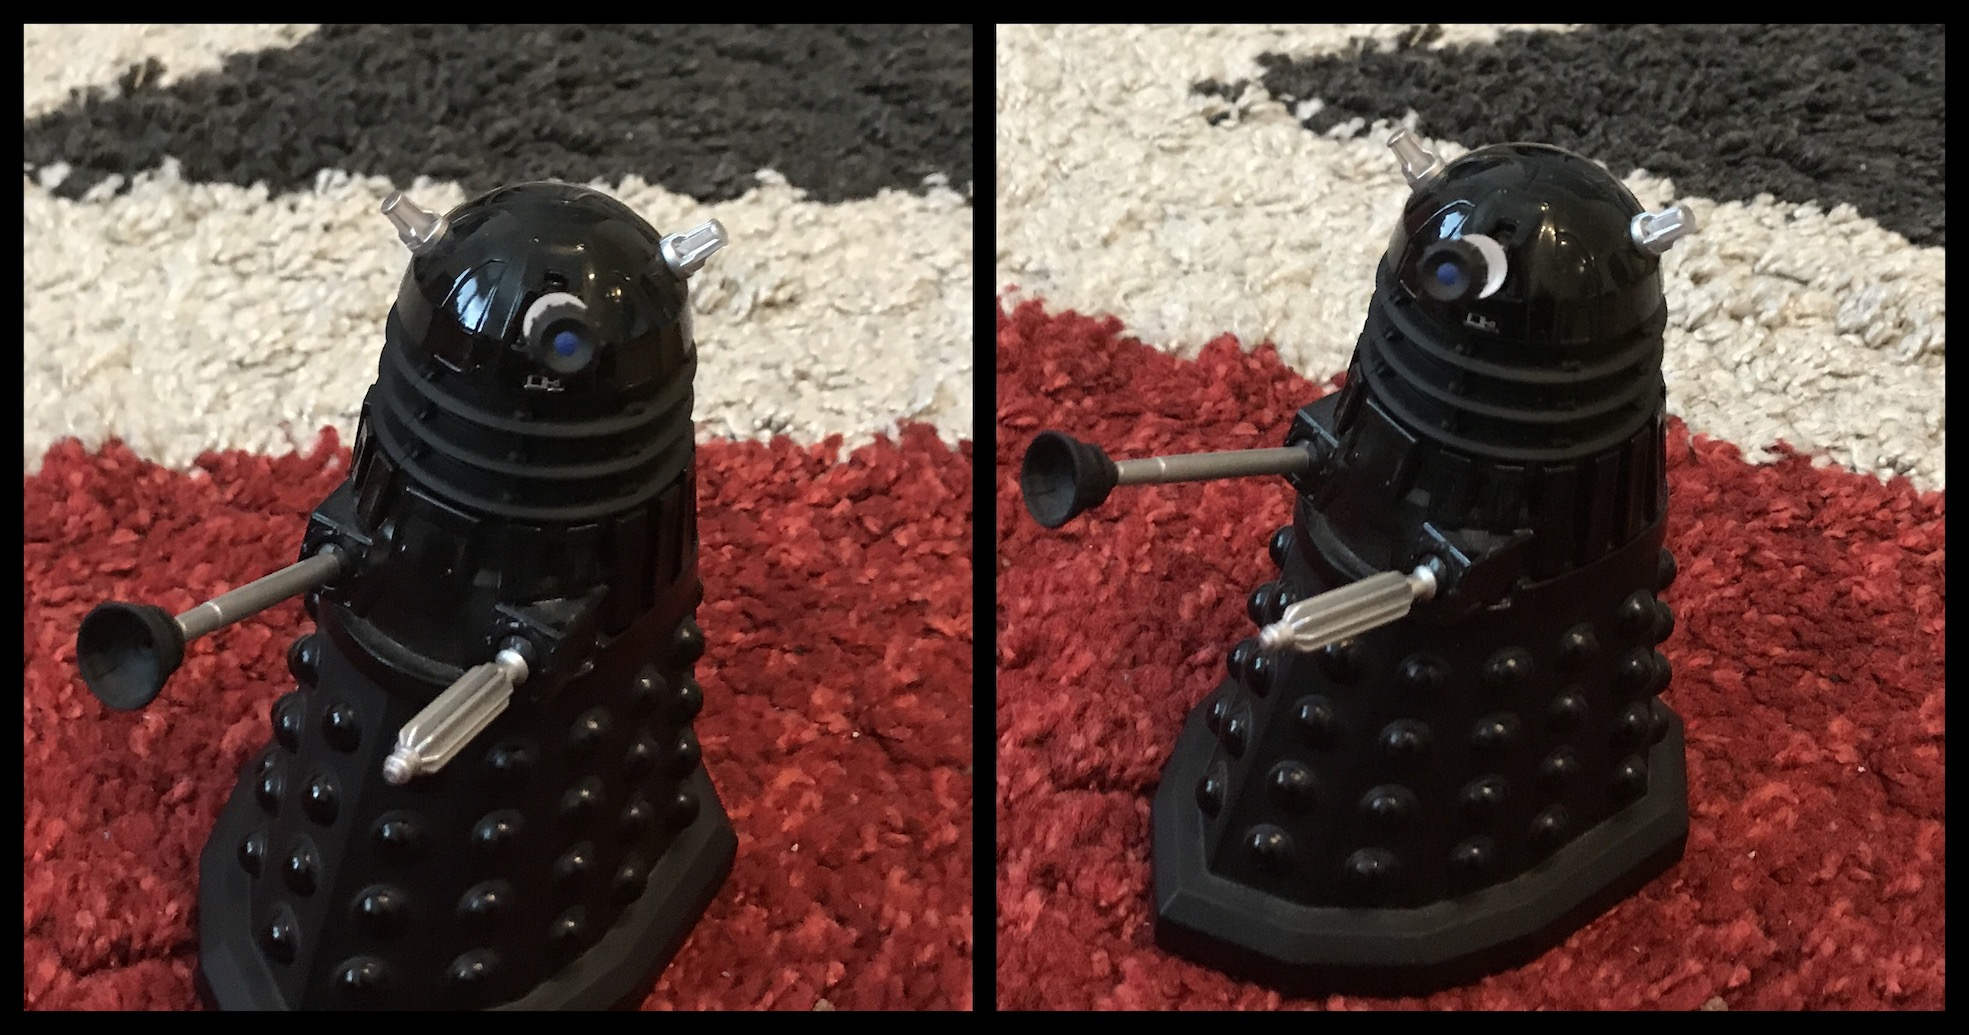 Die-cast Dalek (10.3% deviation)